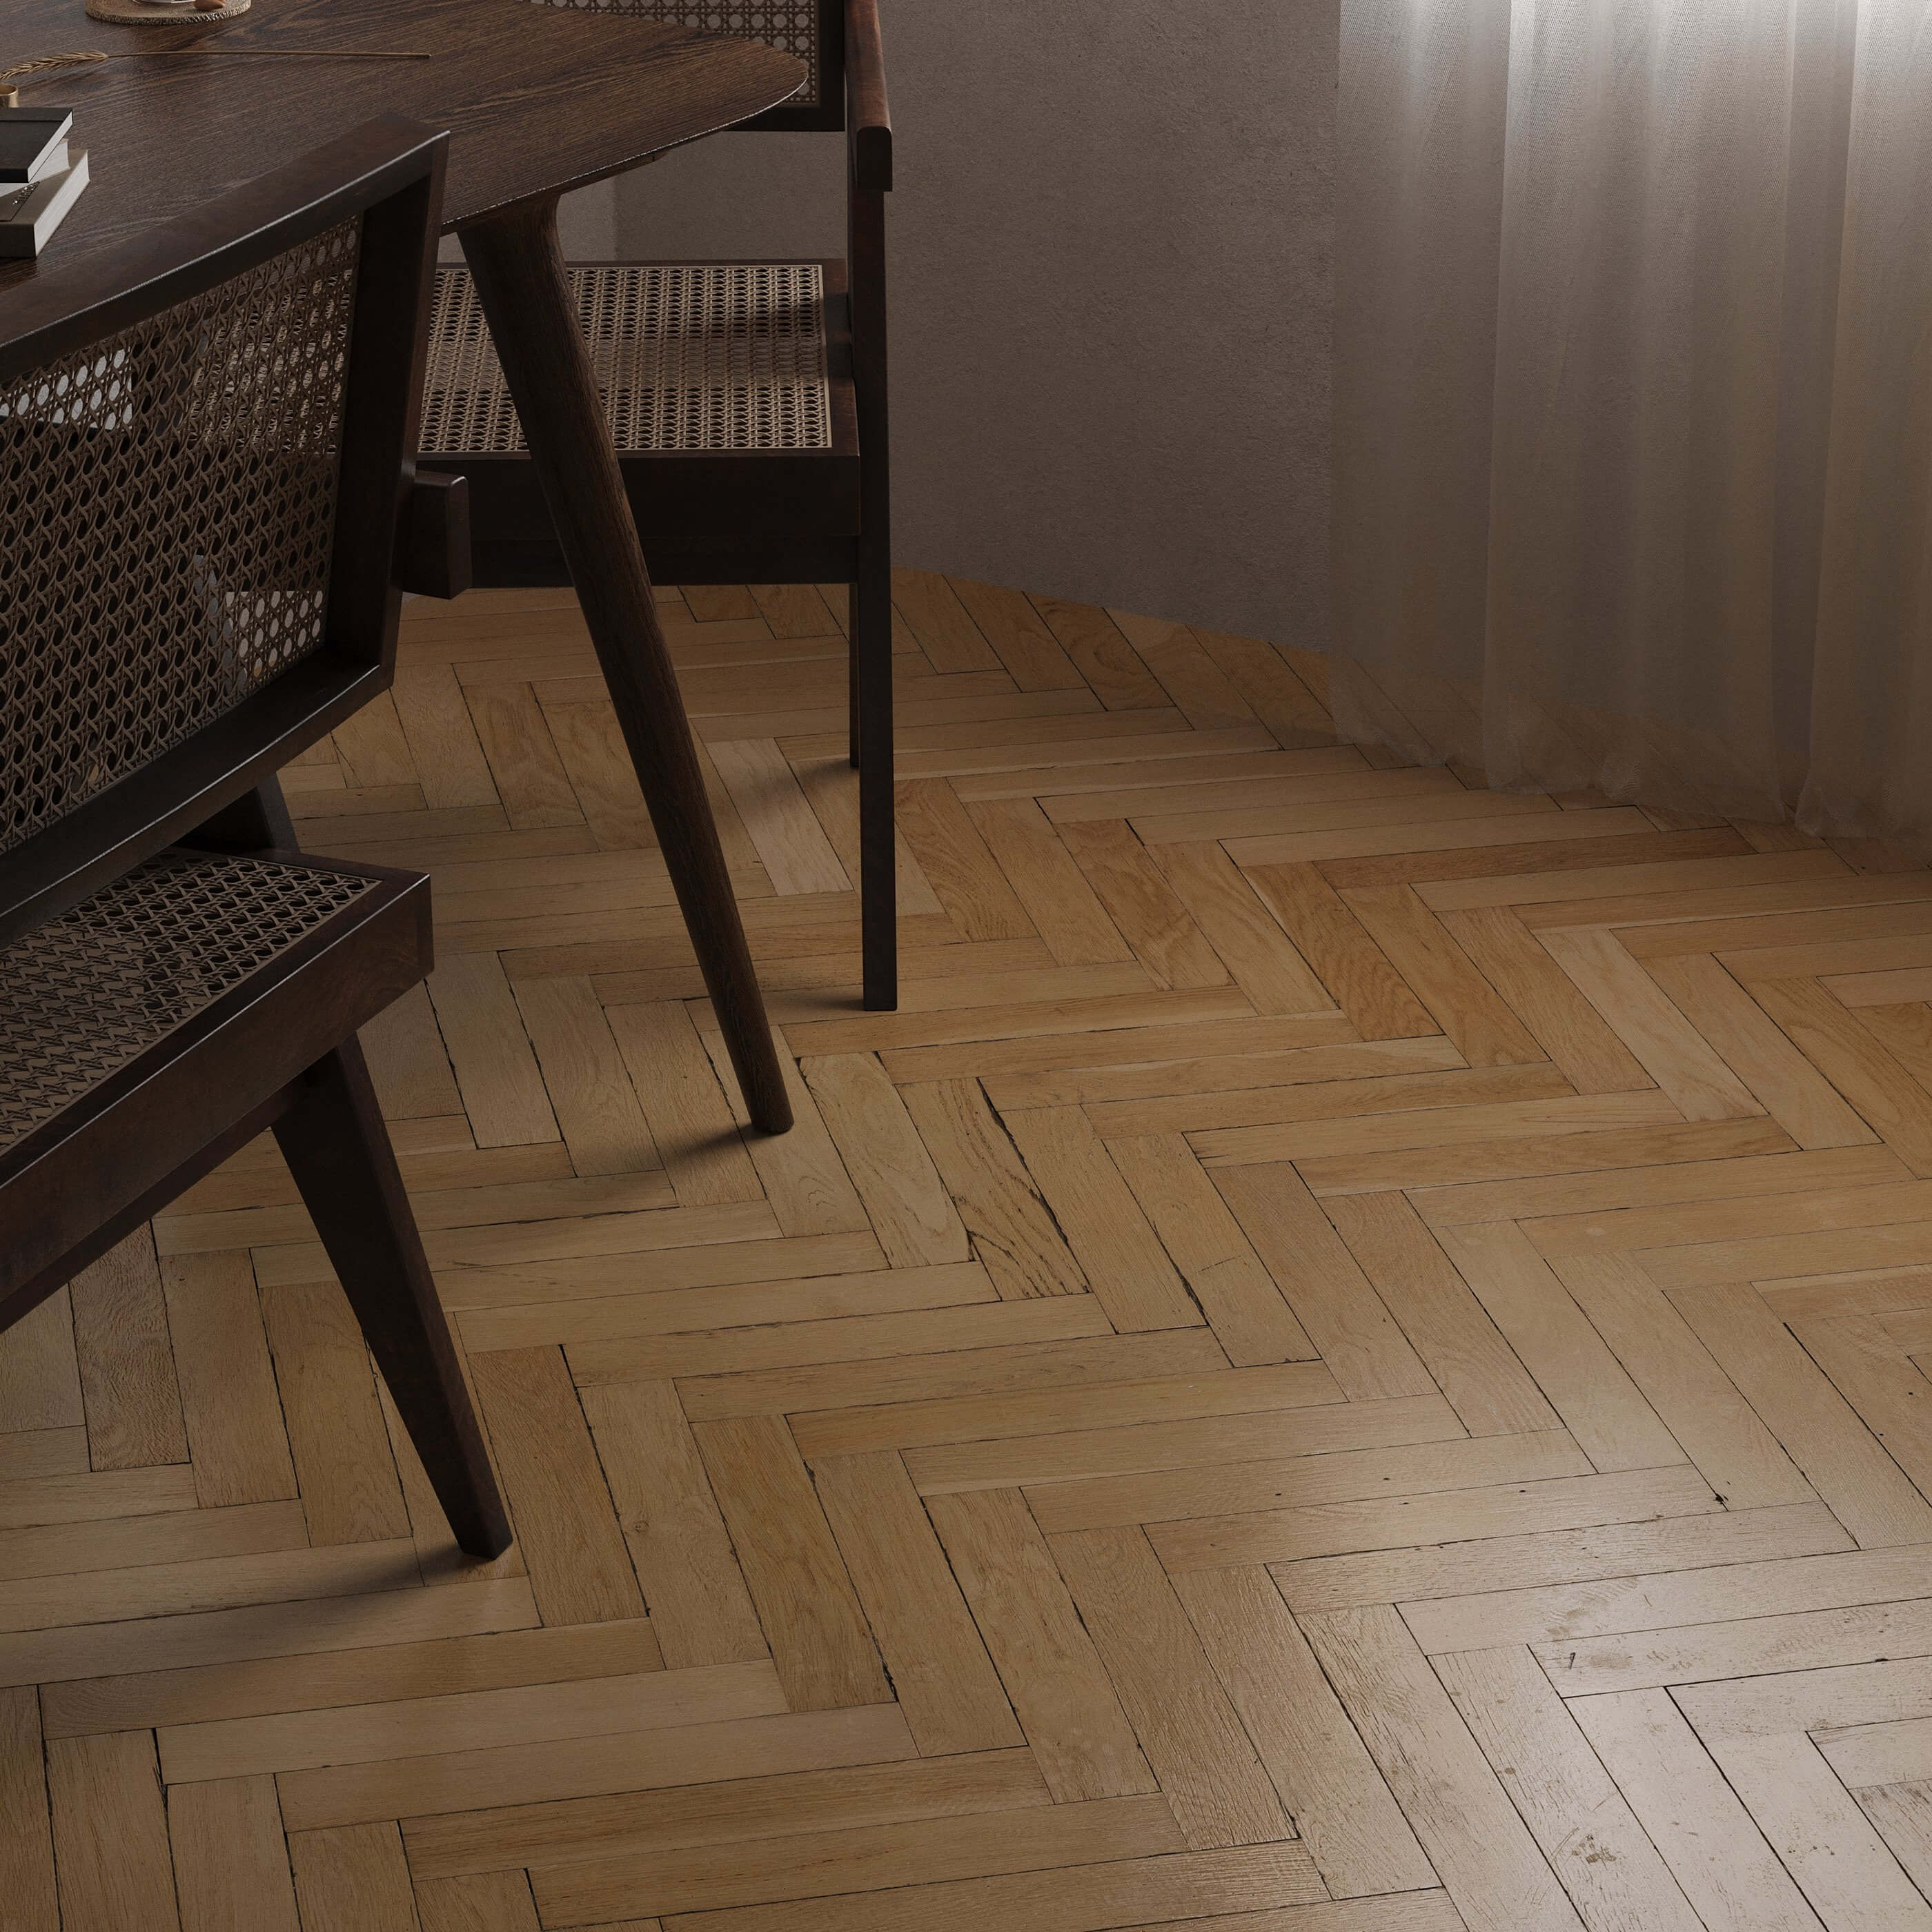 Sunset shoot wood oak floor - cgi visualization